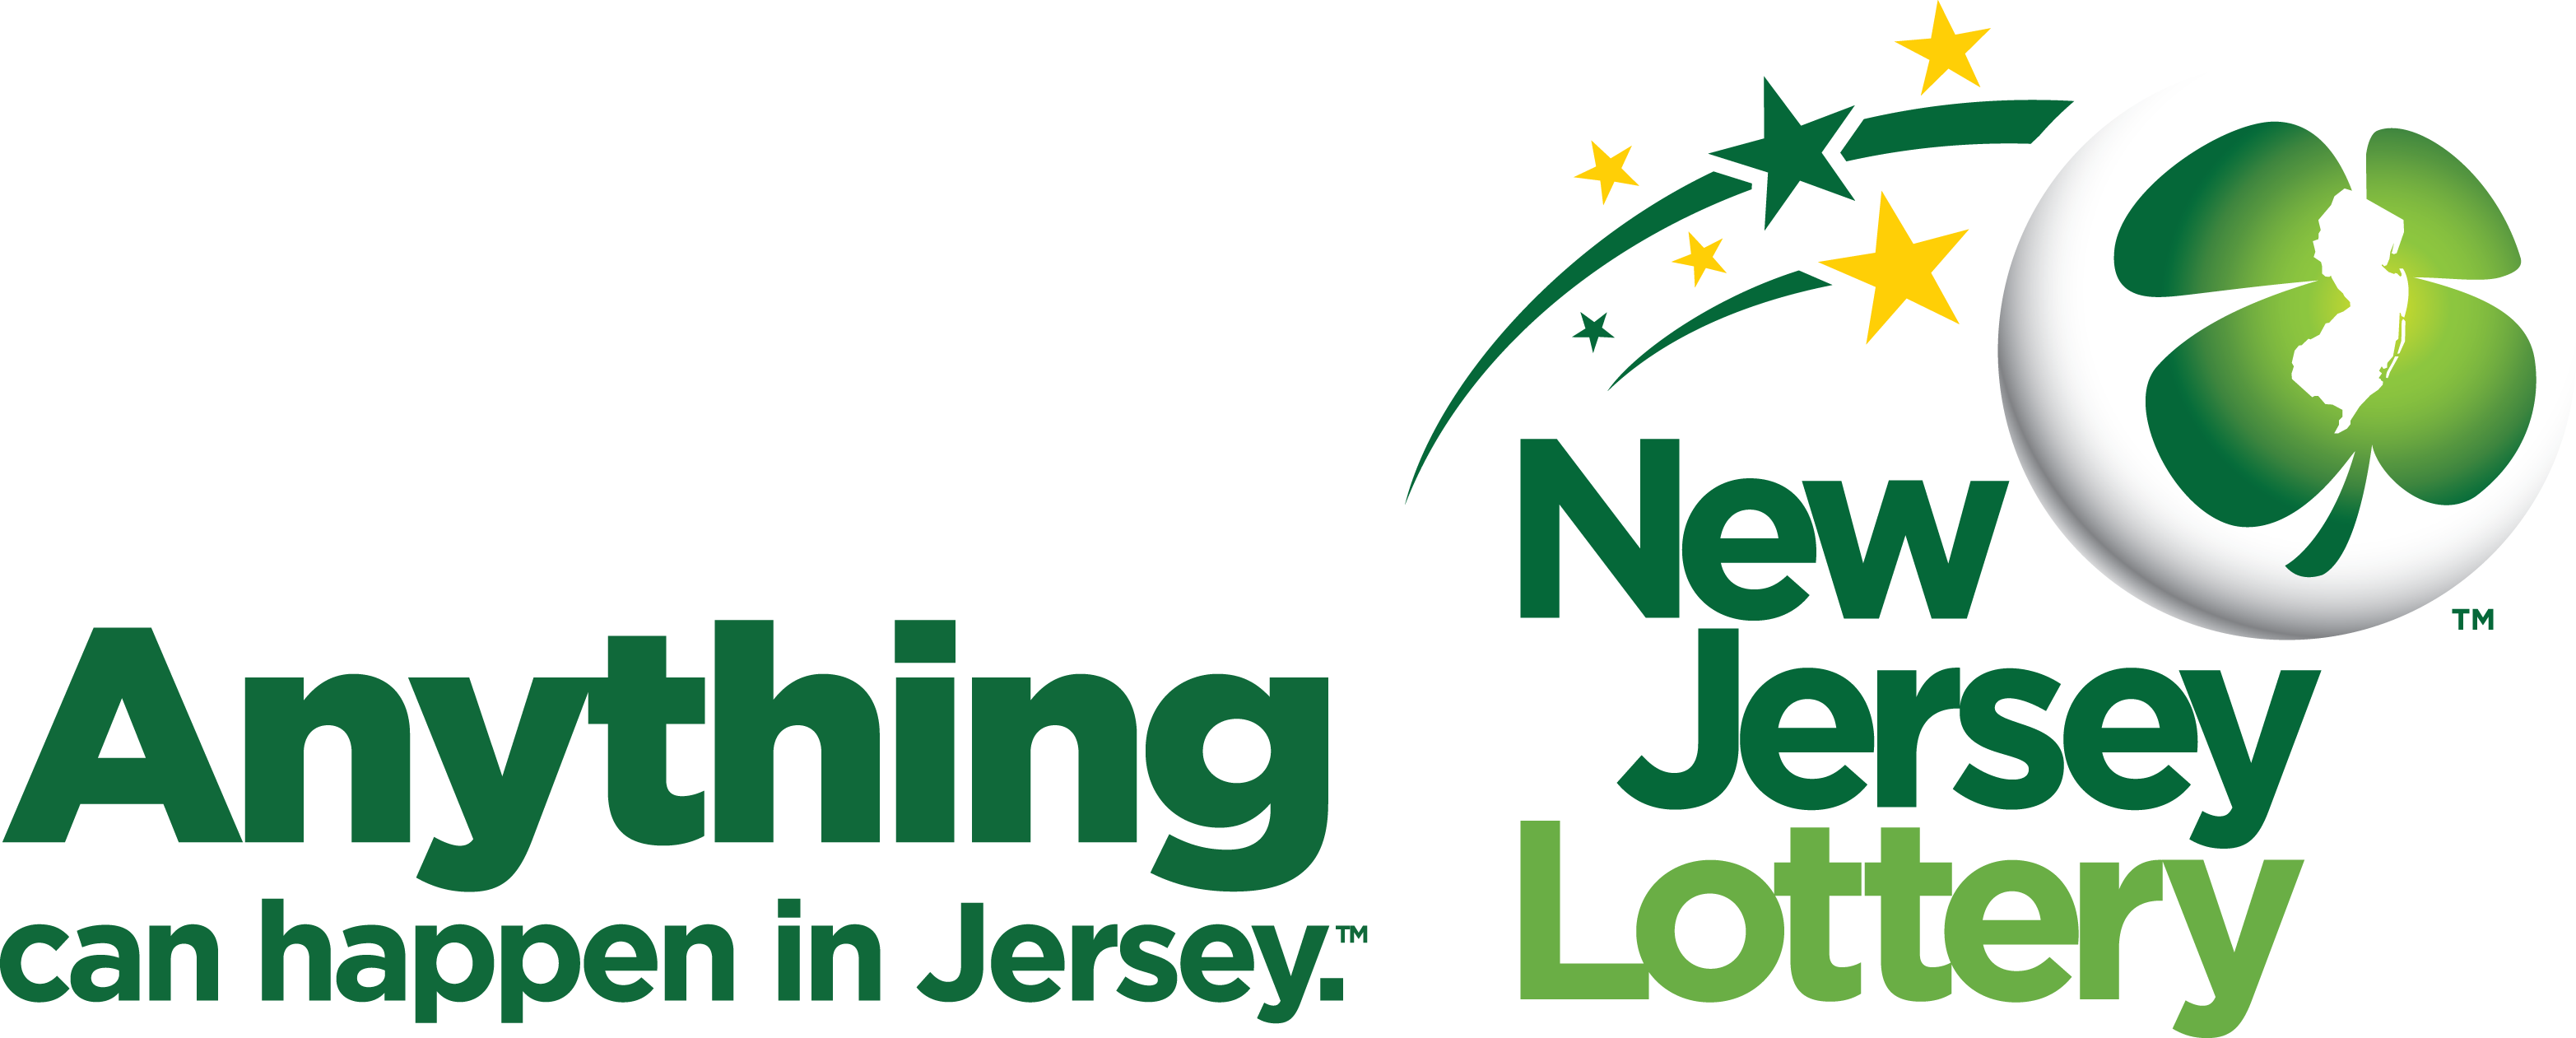 NJ Lotto